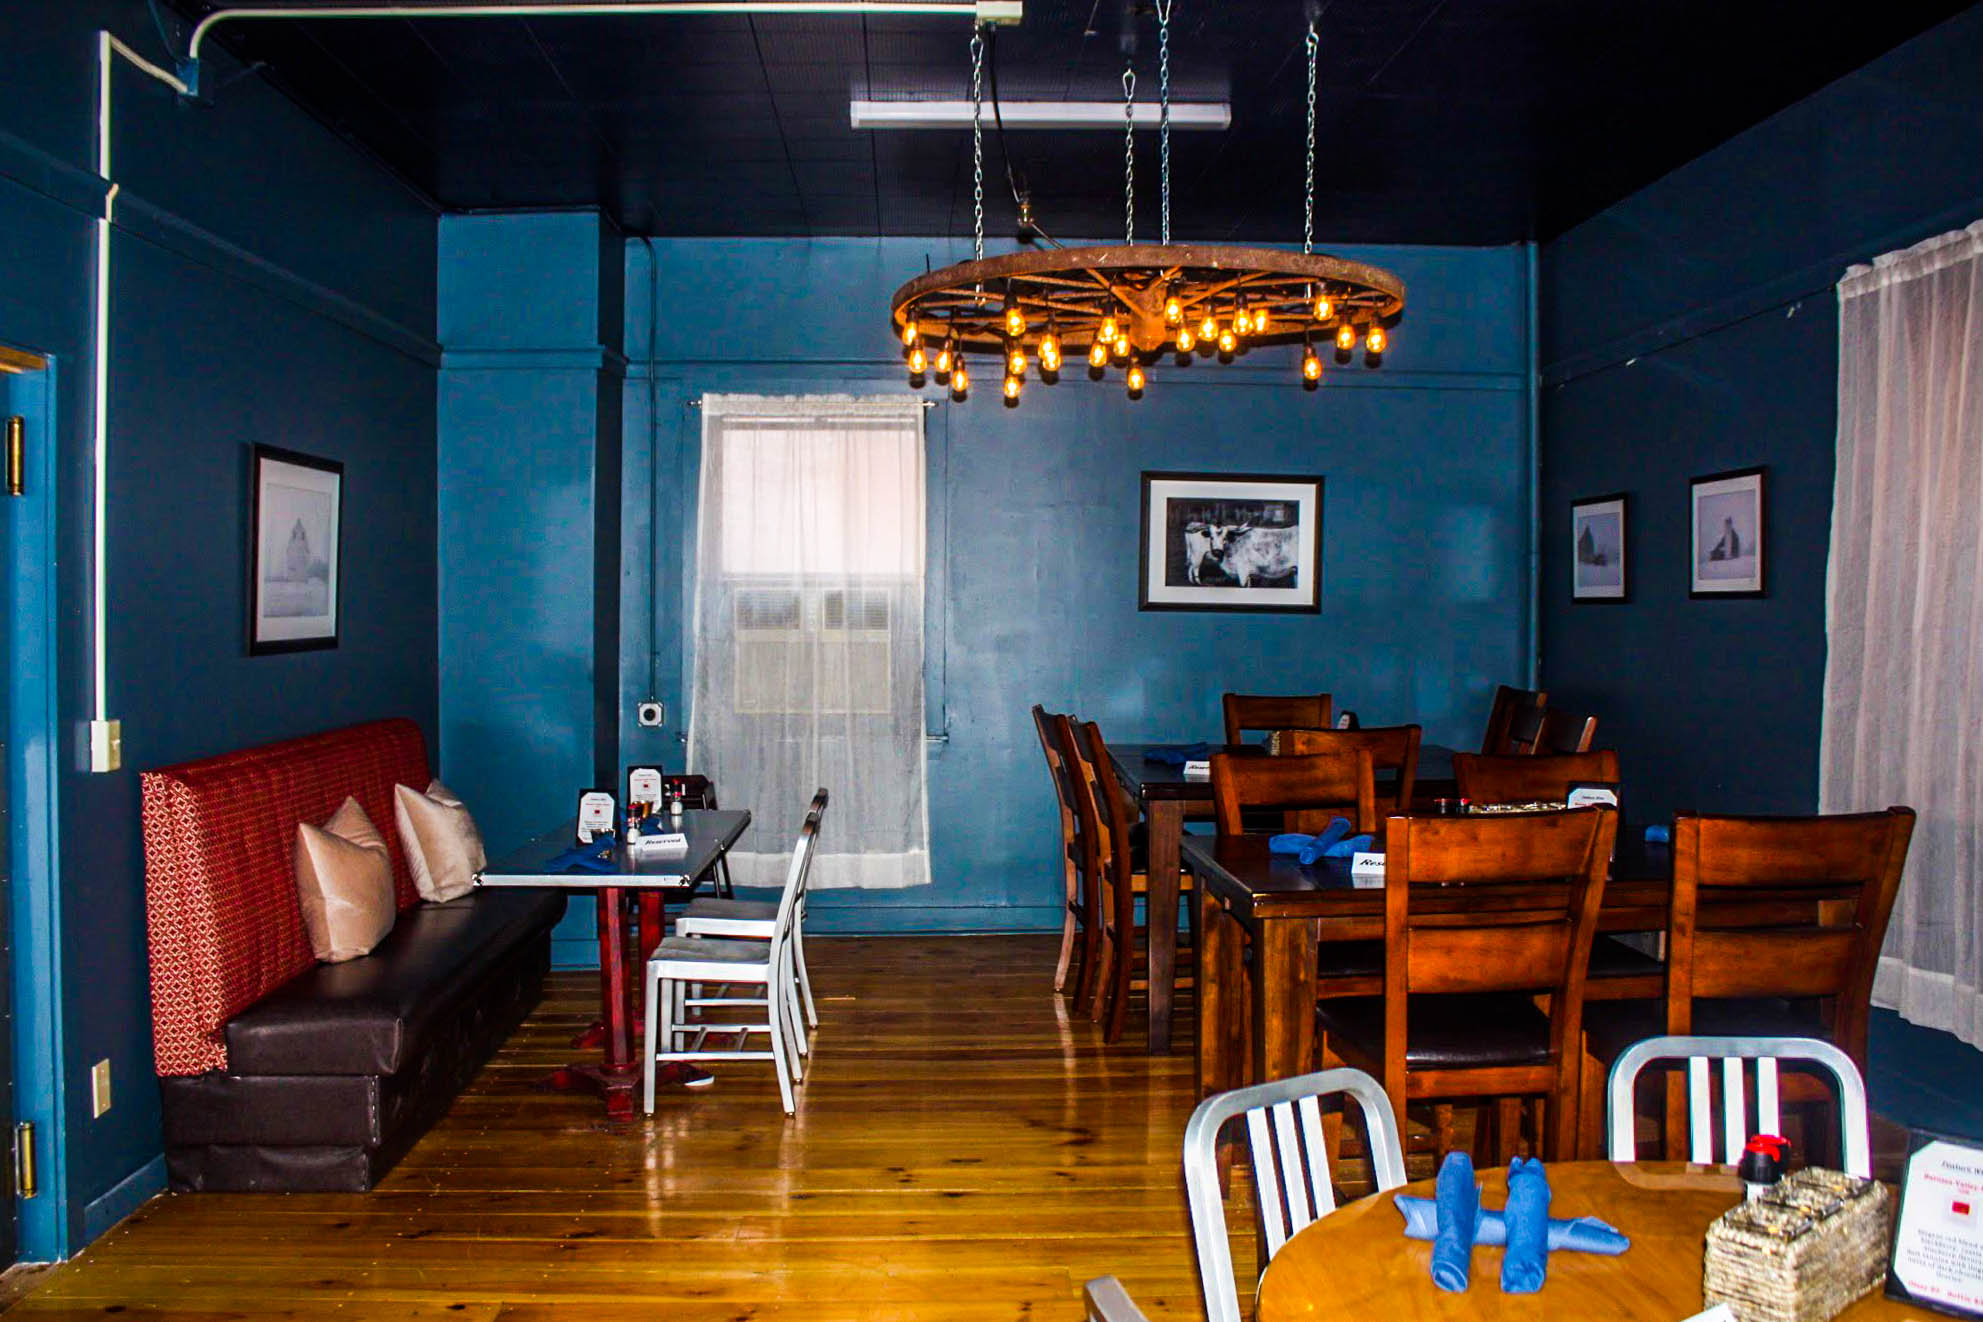 The rear dining area of Taso on Center in Downtown Rutland, Vermont.